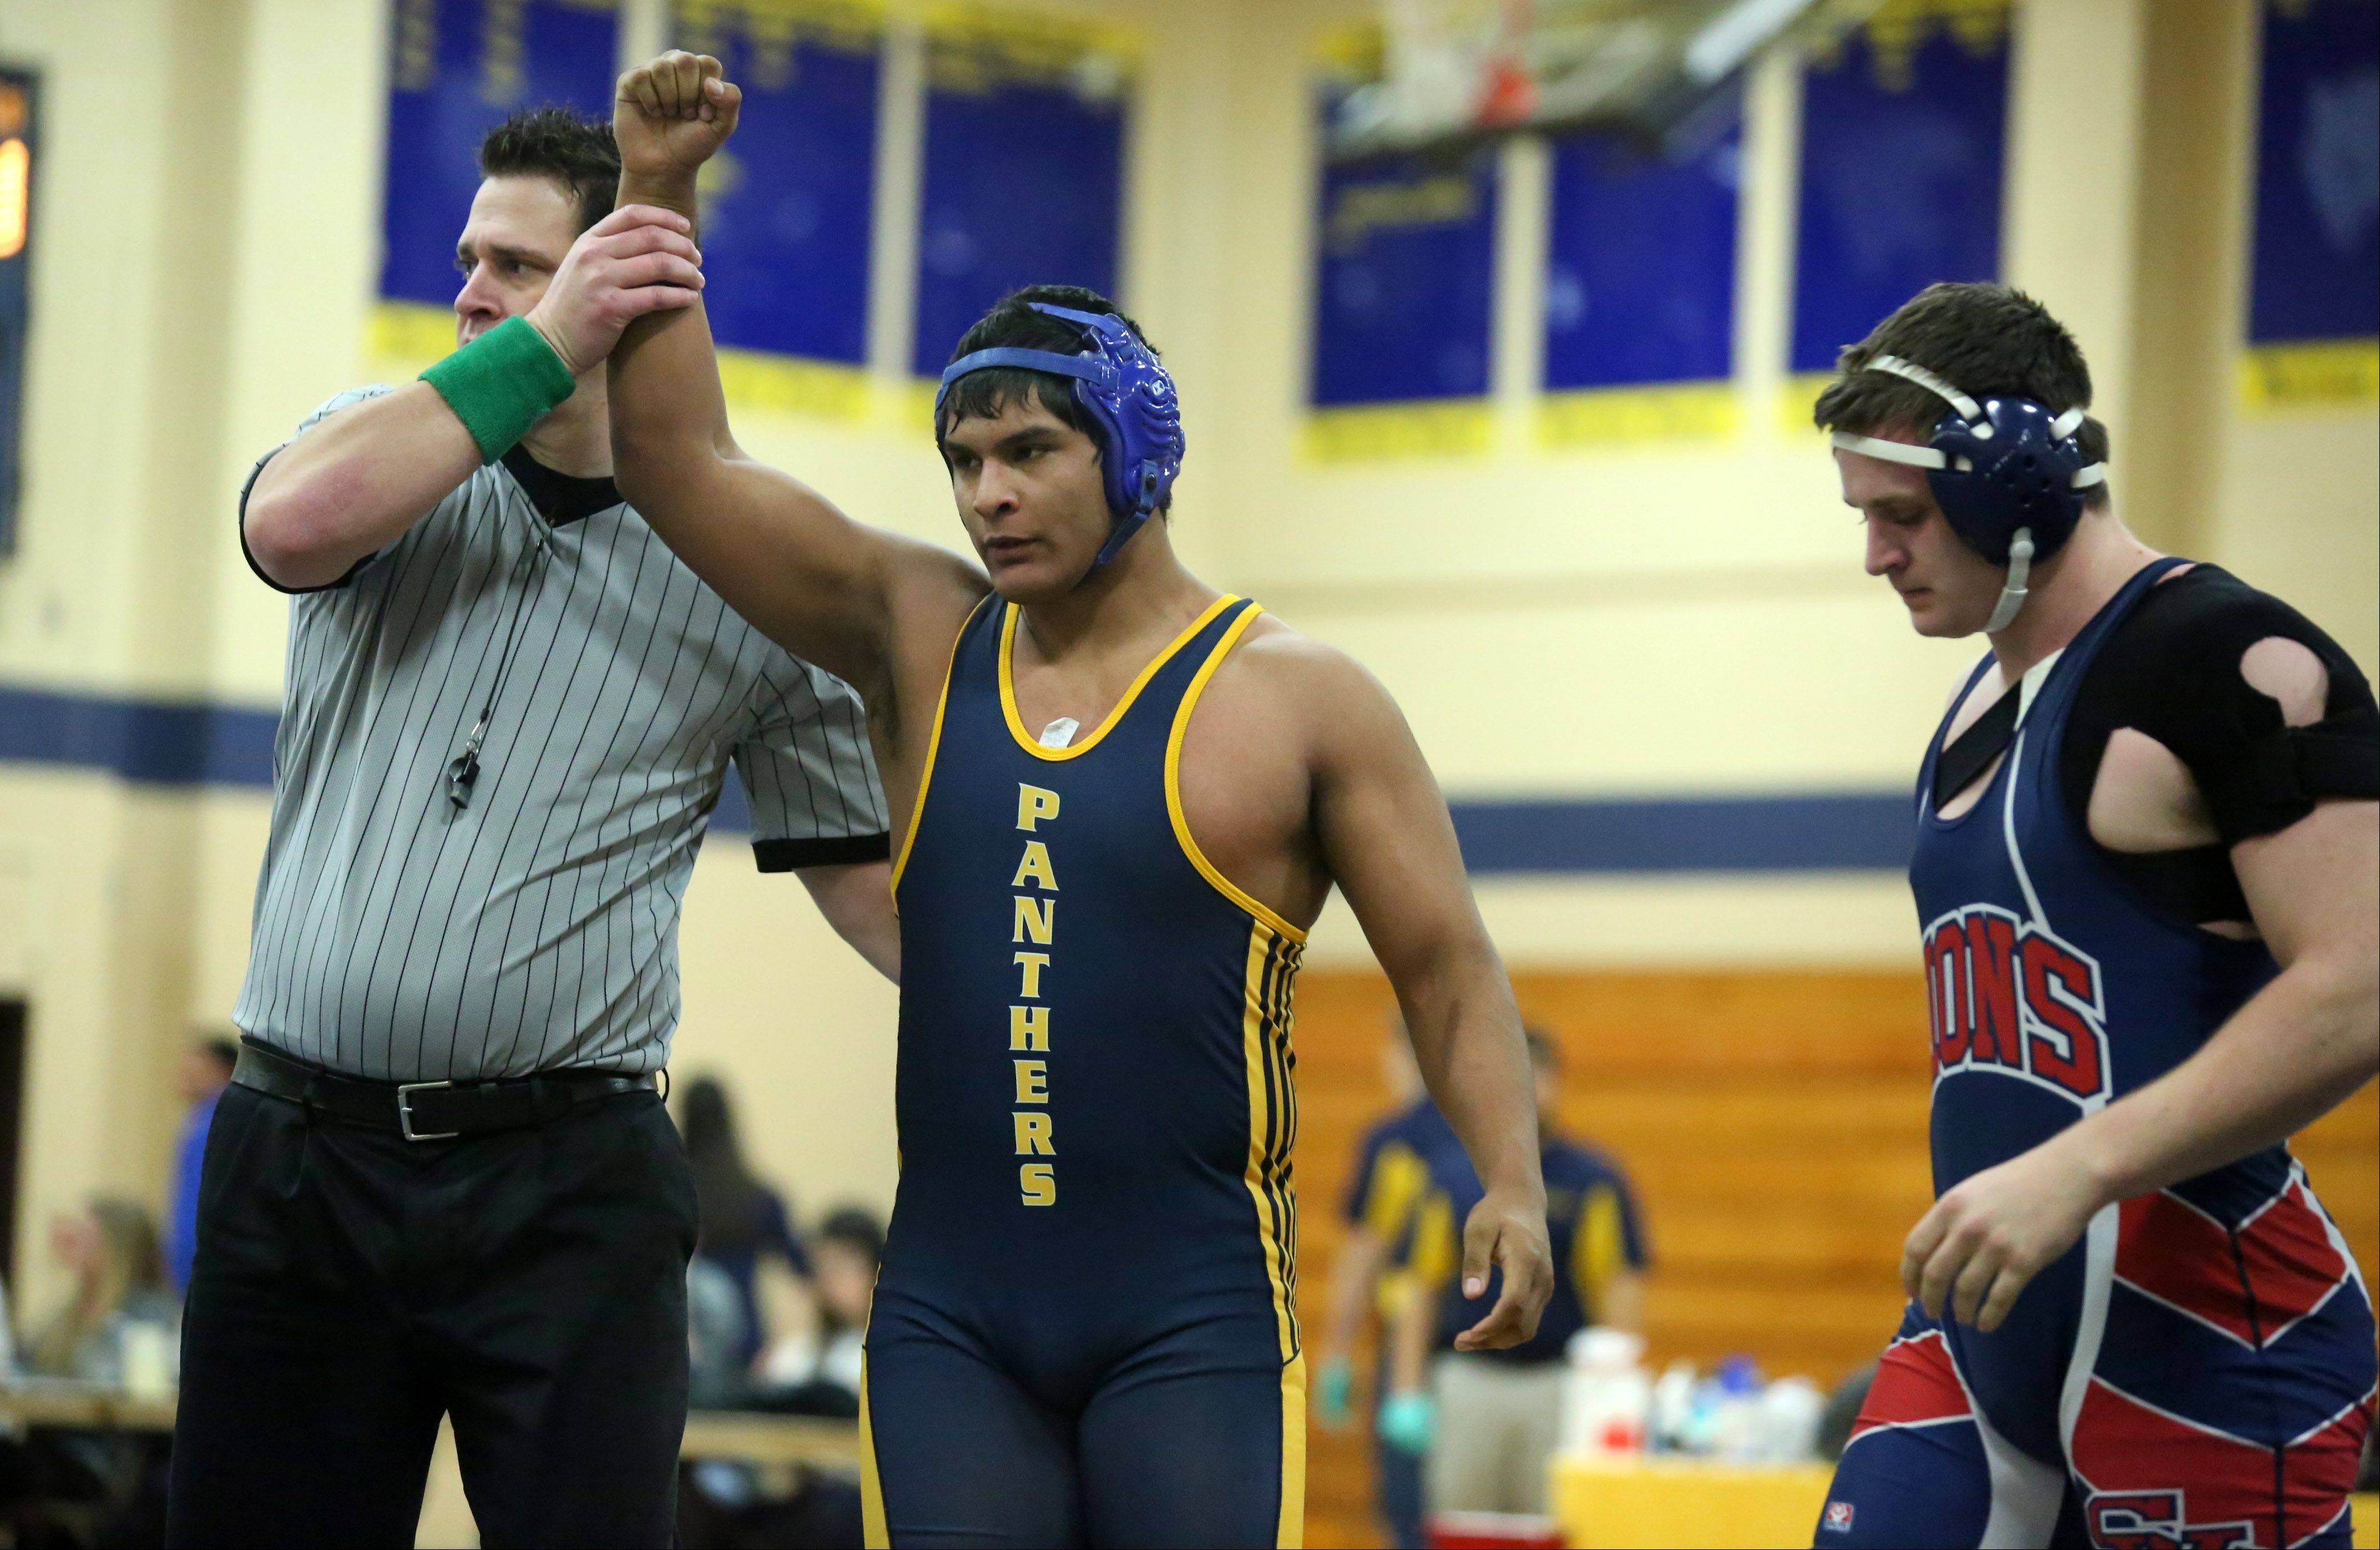 Round Lake's Algustine Bahena pins St. Viator's Charles Walberg in a 220-pound match at Round Lake wrestling meet on Saturday.